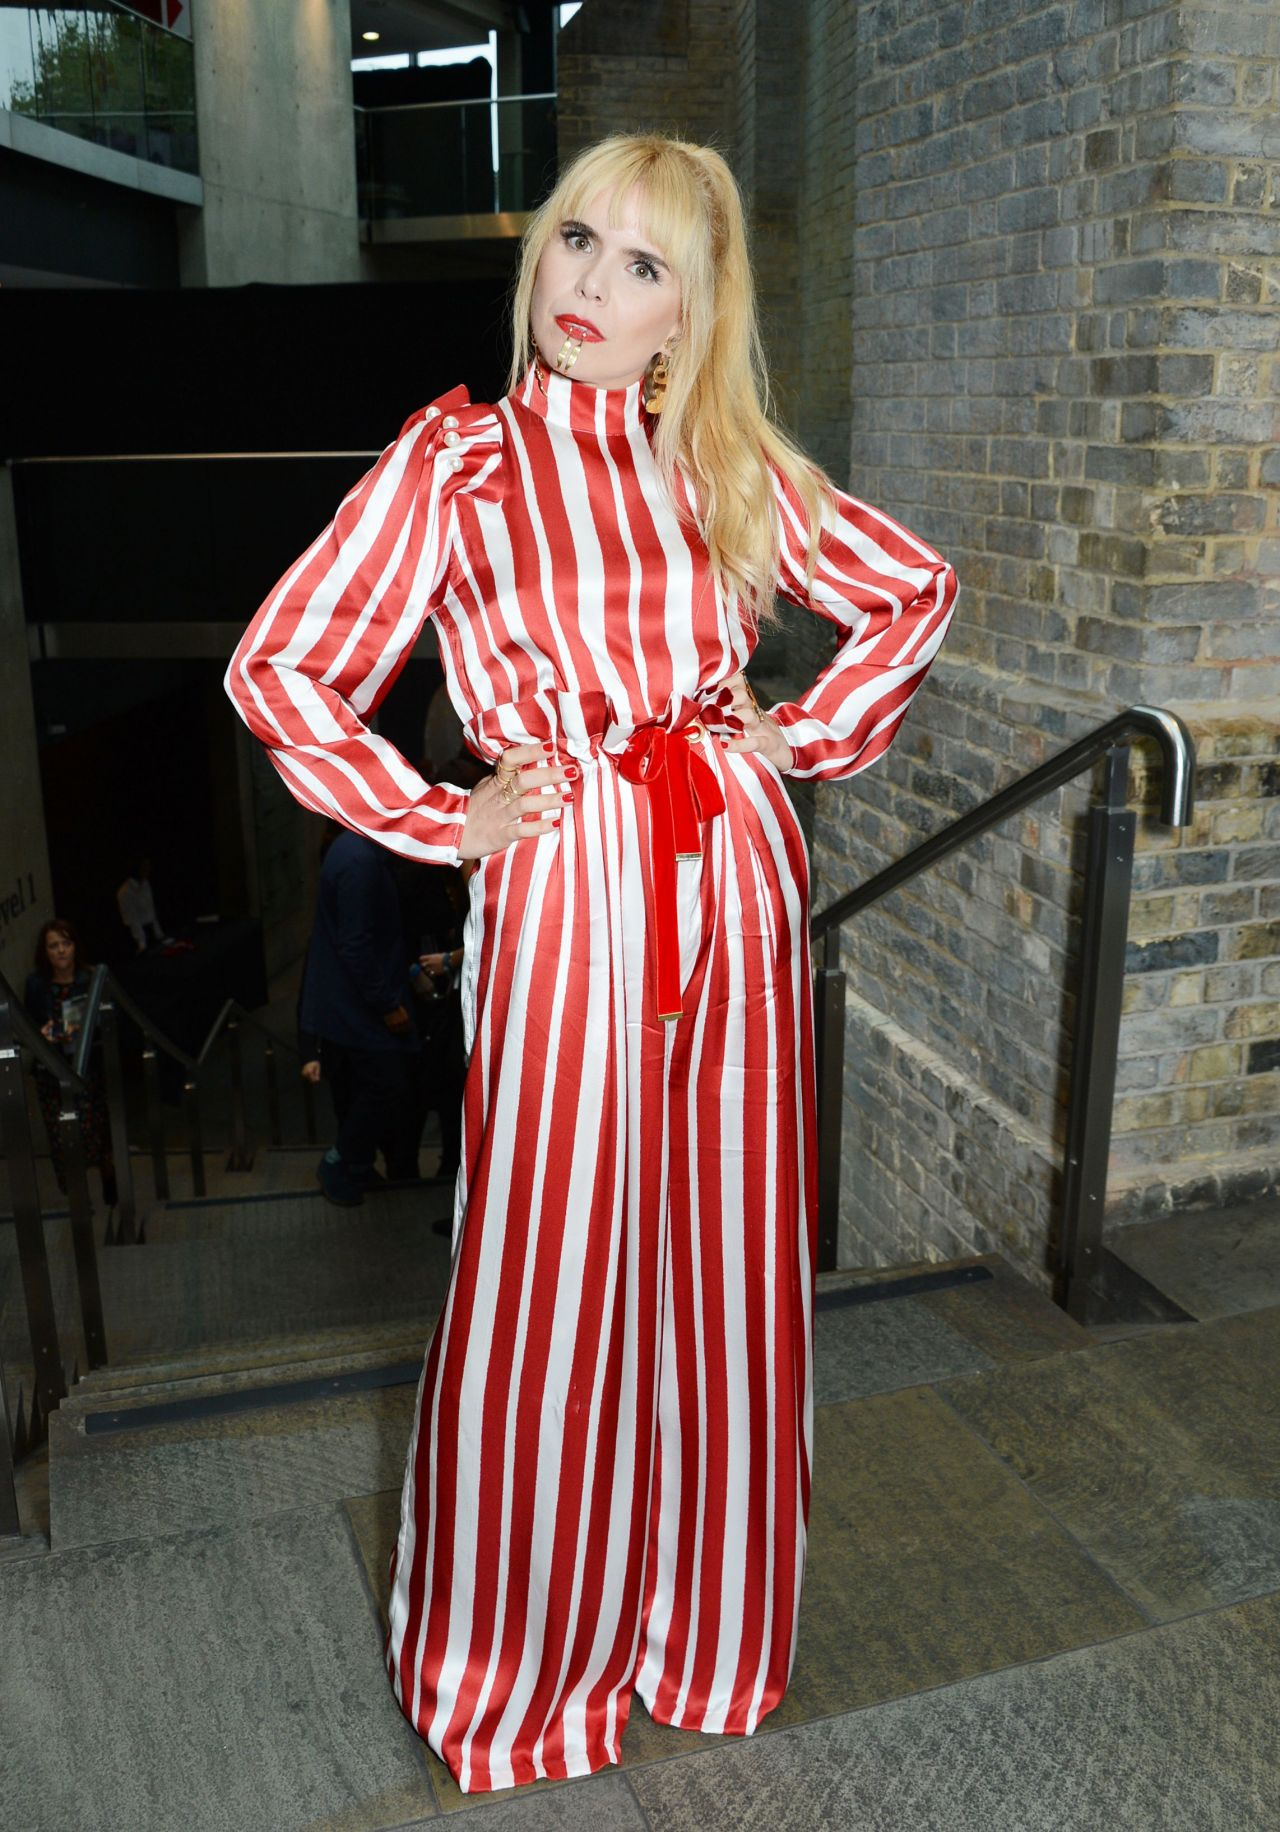 Paloma Faith Q Awards 2017 In London